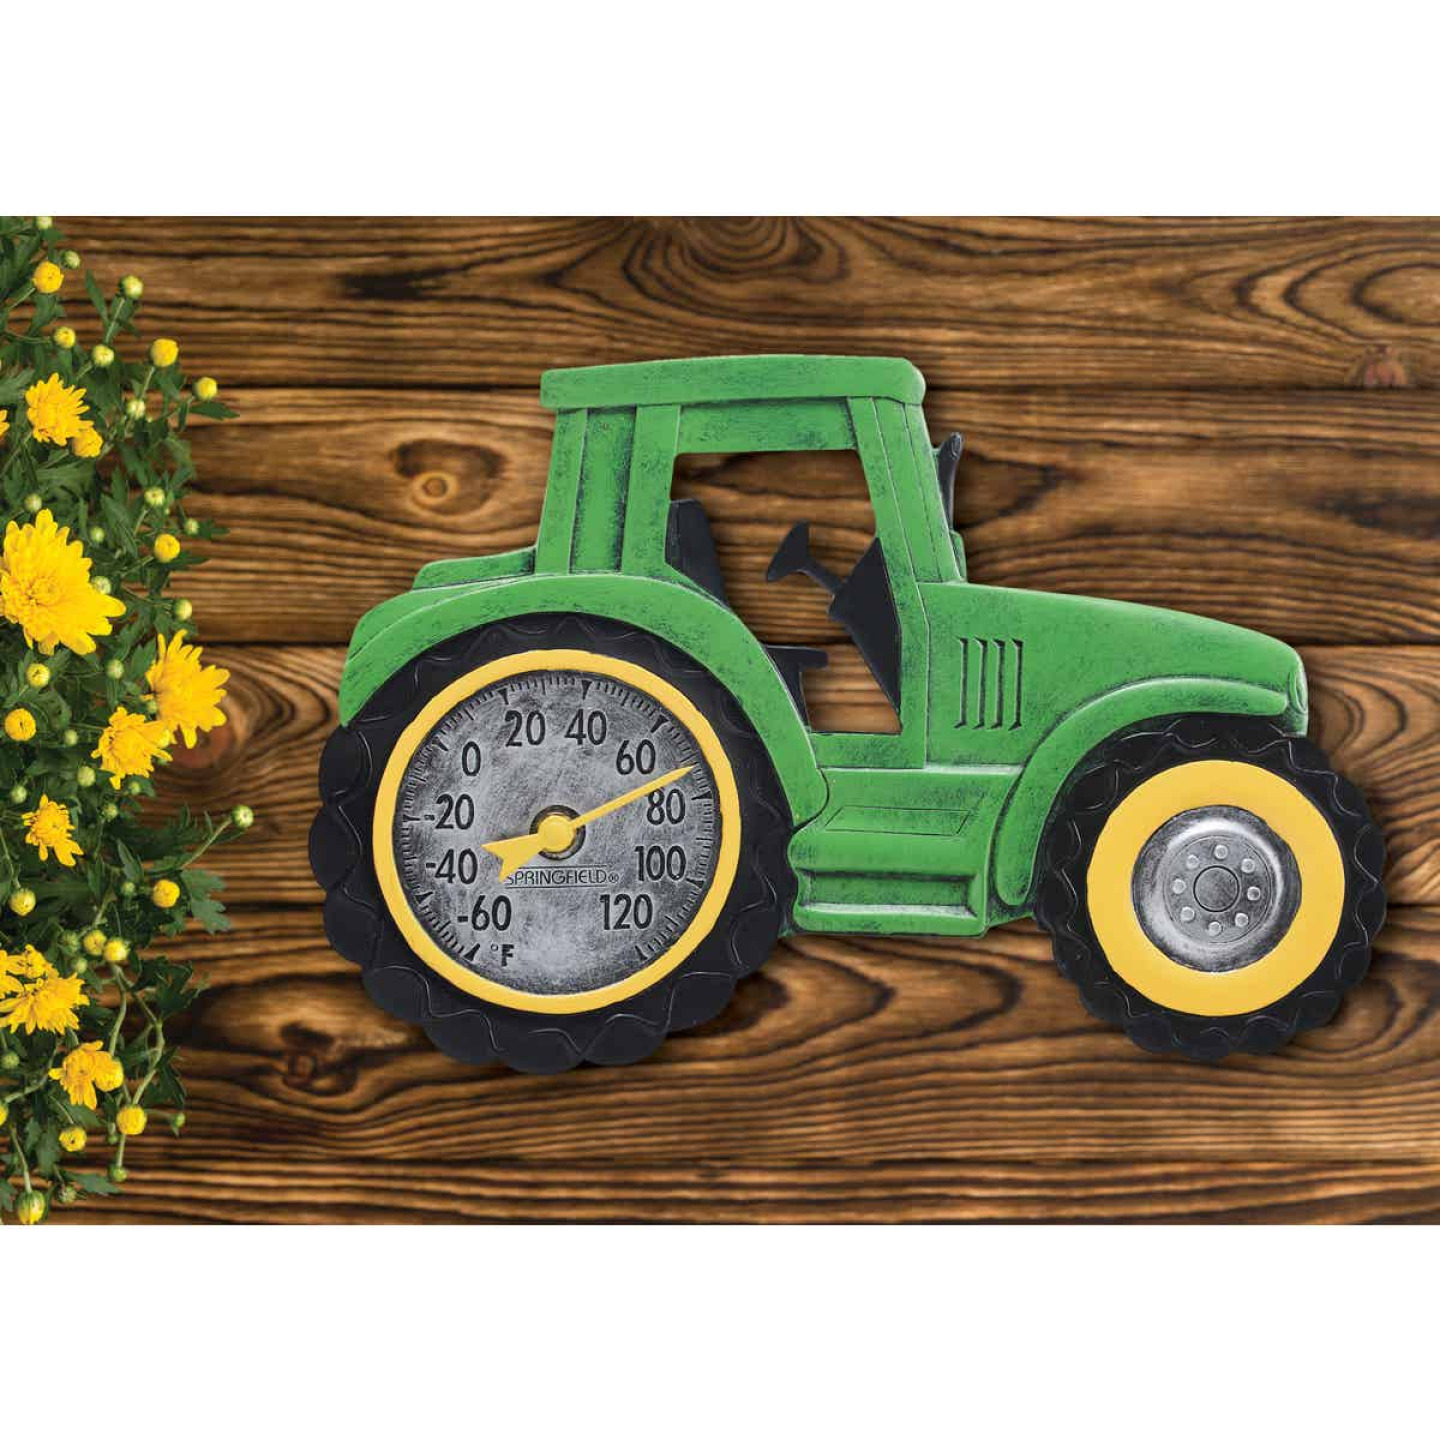 Taylor SpringField 14 In. x 9.5 In. Green Tractor Indoor & Outdoor Thermometer Image 2